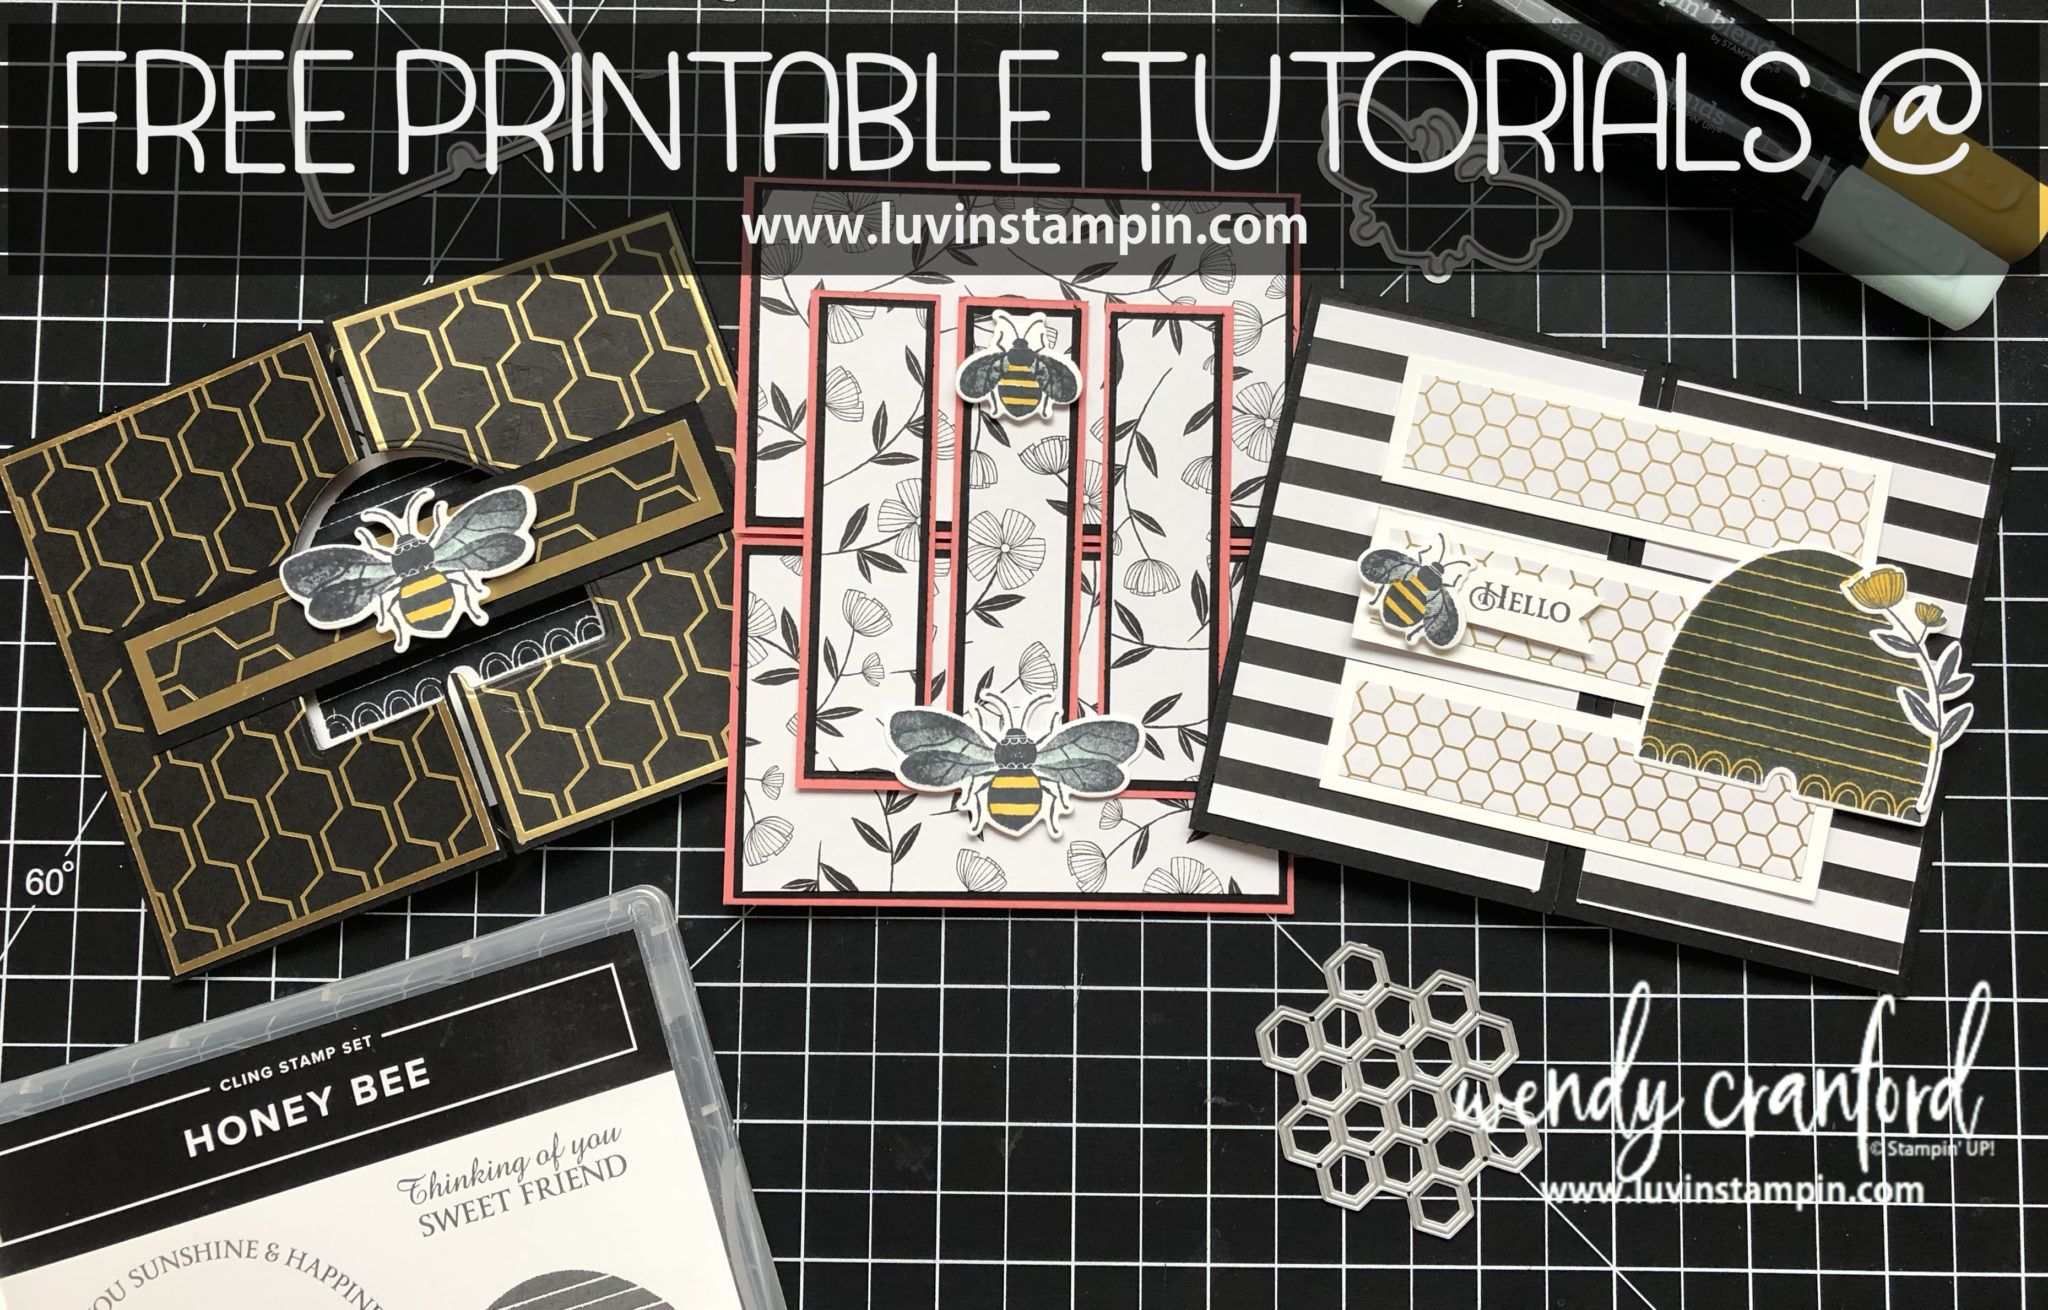 3 Crossover Fun Fold Card Ideas With Free Printable Tutorial In 2020 Fancy Fold Card Tutorials Fun Fold Cards Fancy Fold Cards